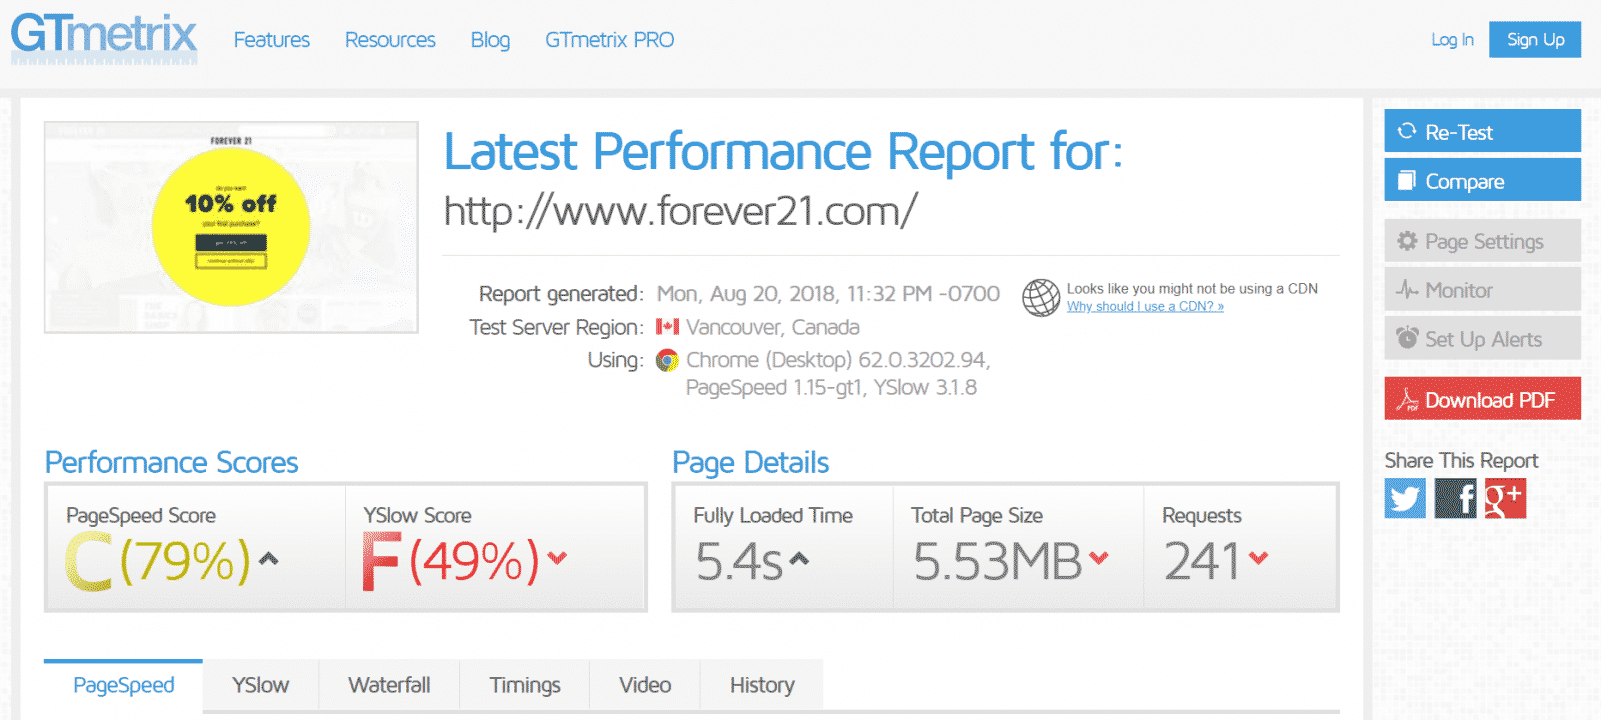 Optimize your website's page loading time